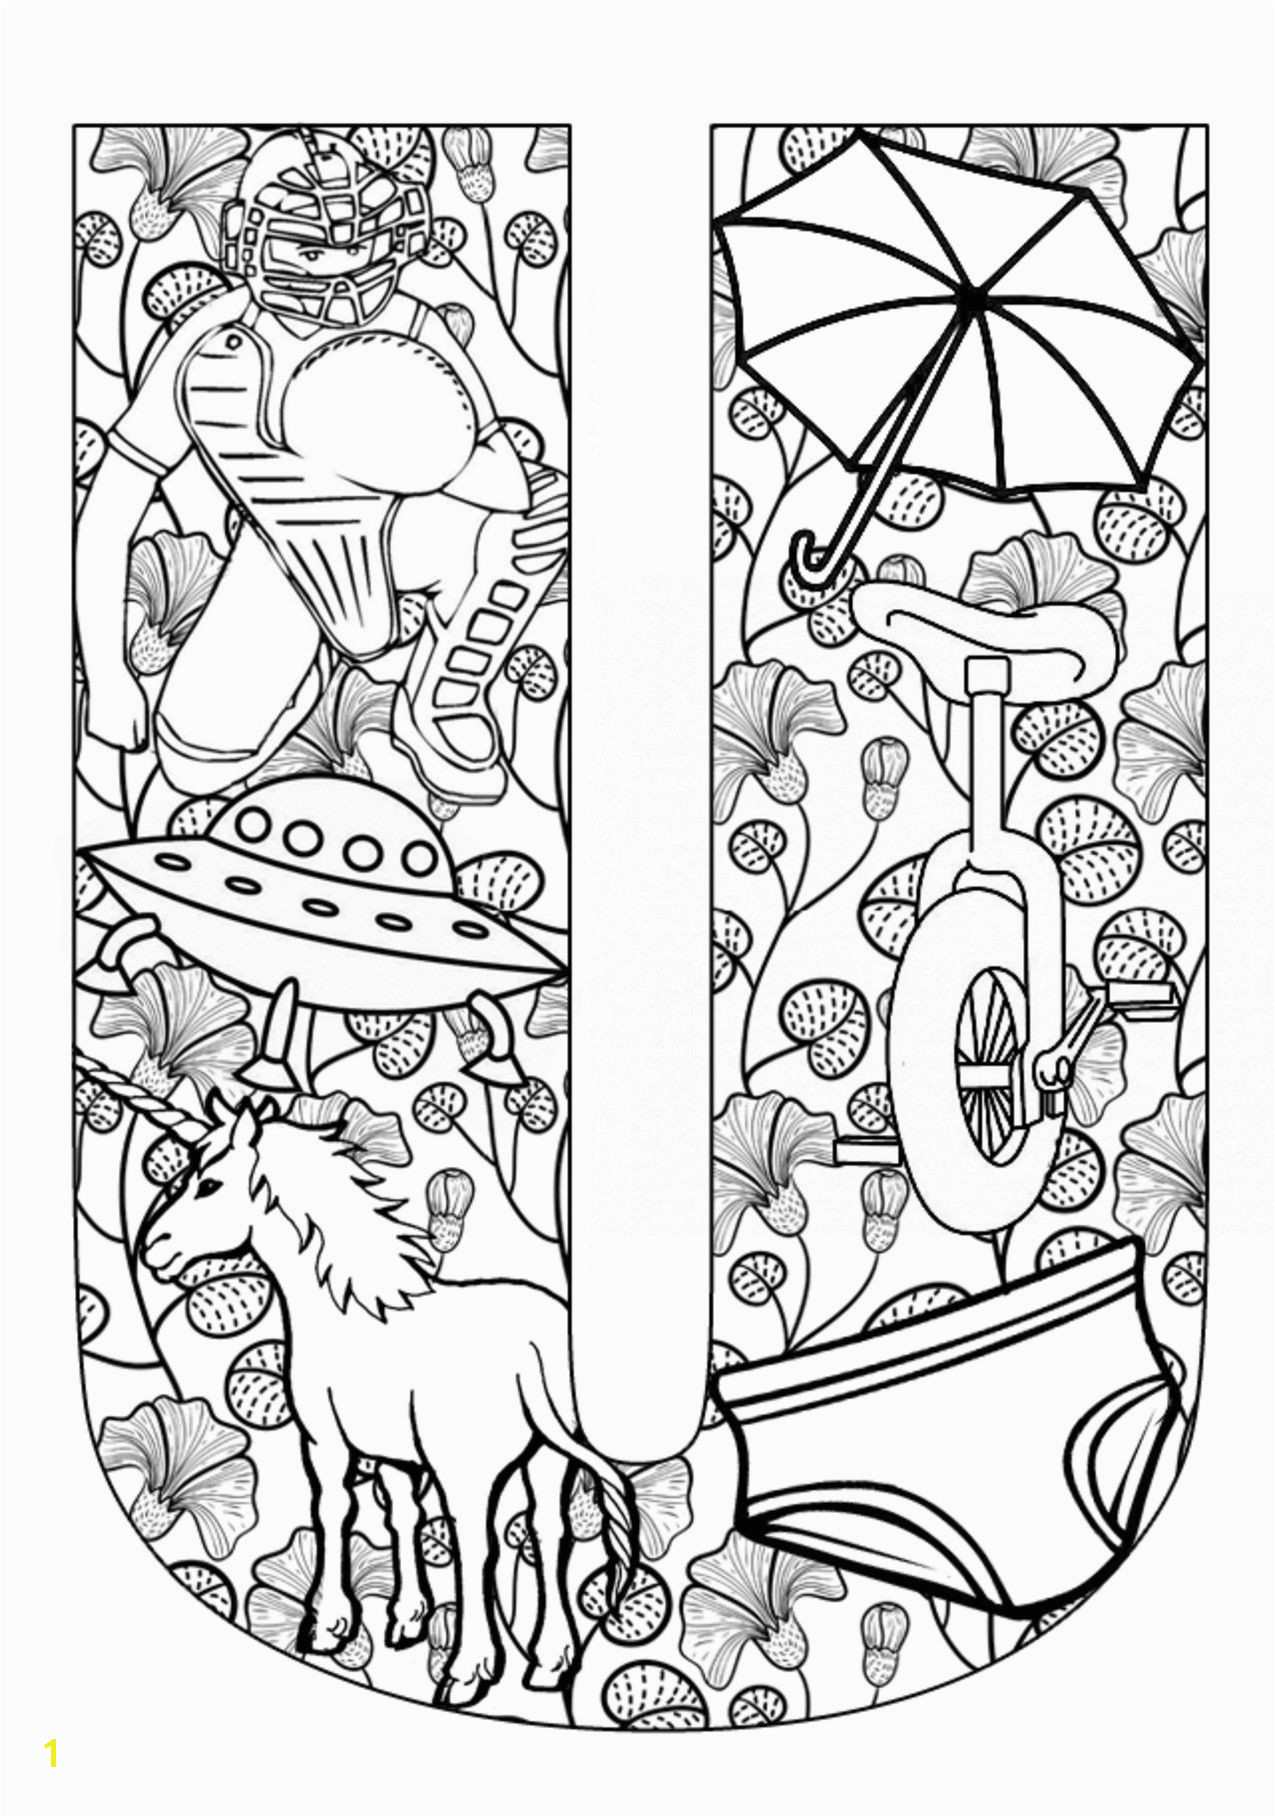 U Letter Activities Coloring Book Pages Free Printable Coloring Pages Coloring Sheets